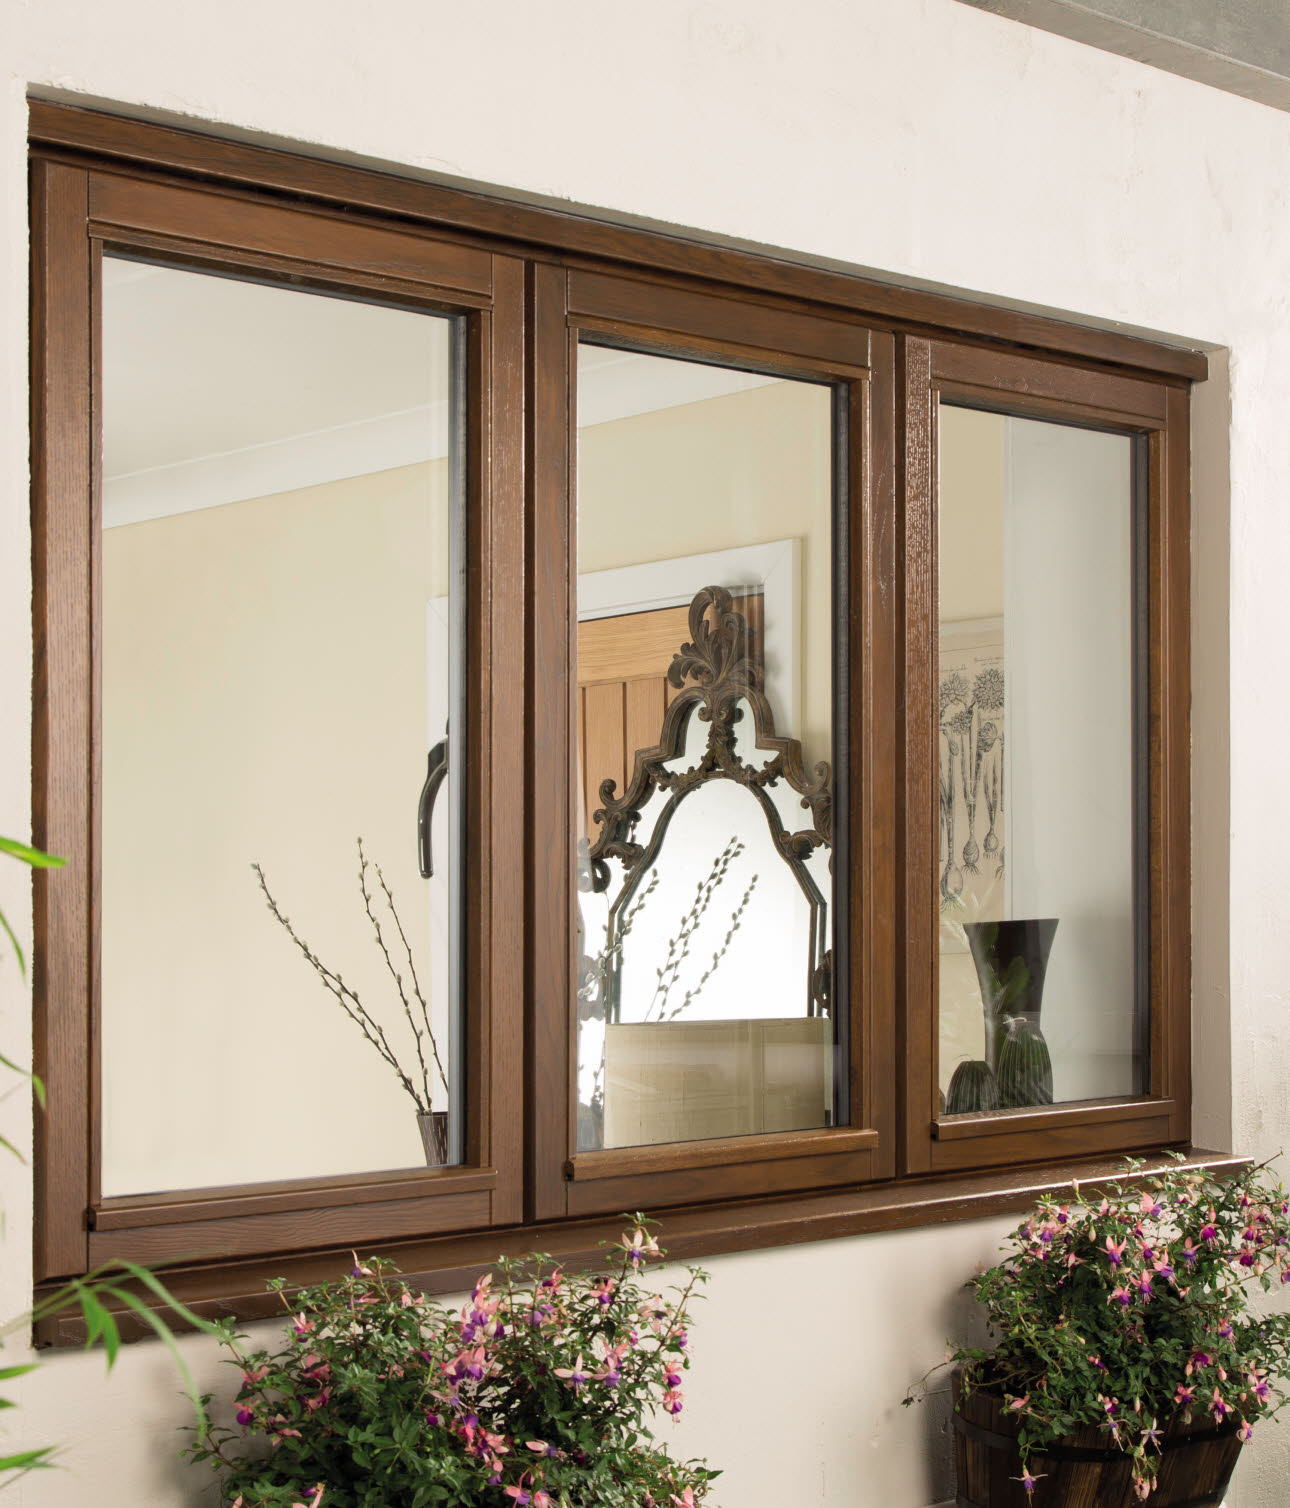 JELD-WEN Oak Casement Timber Window